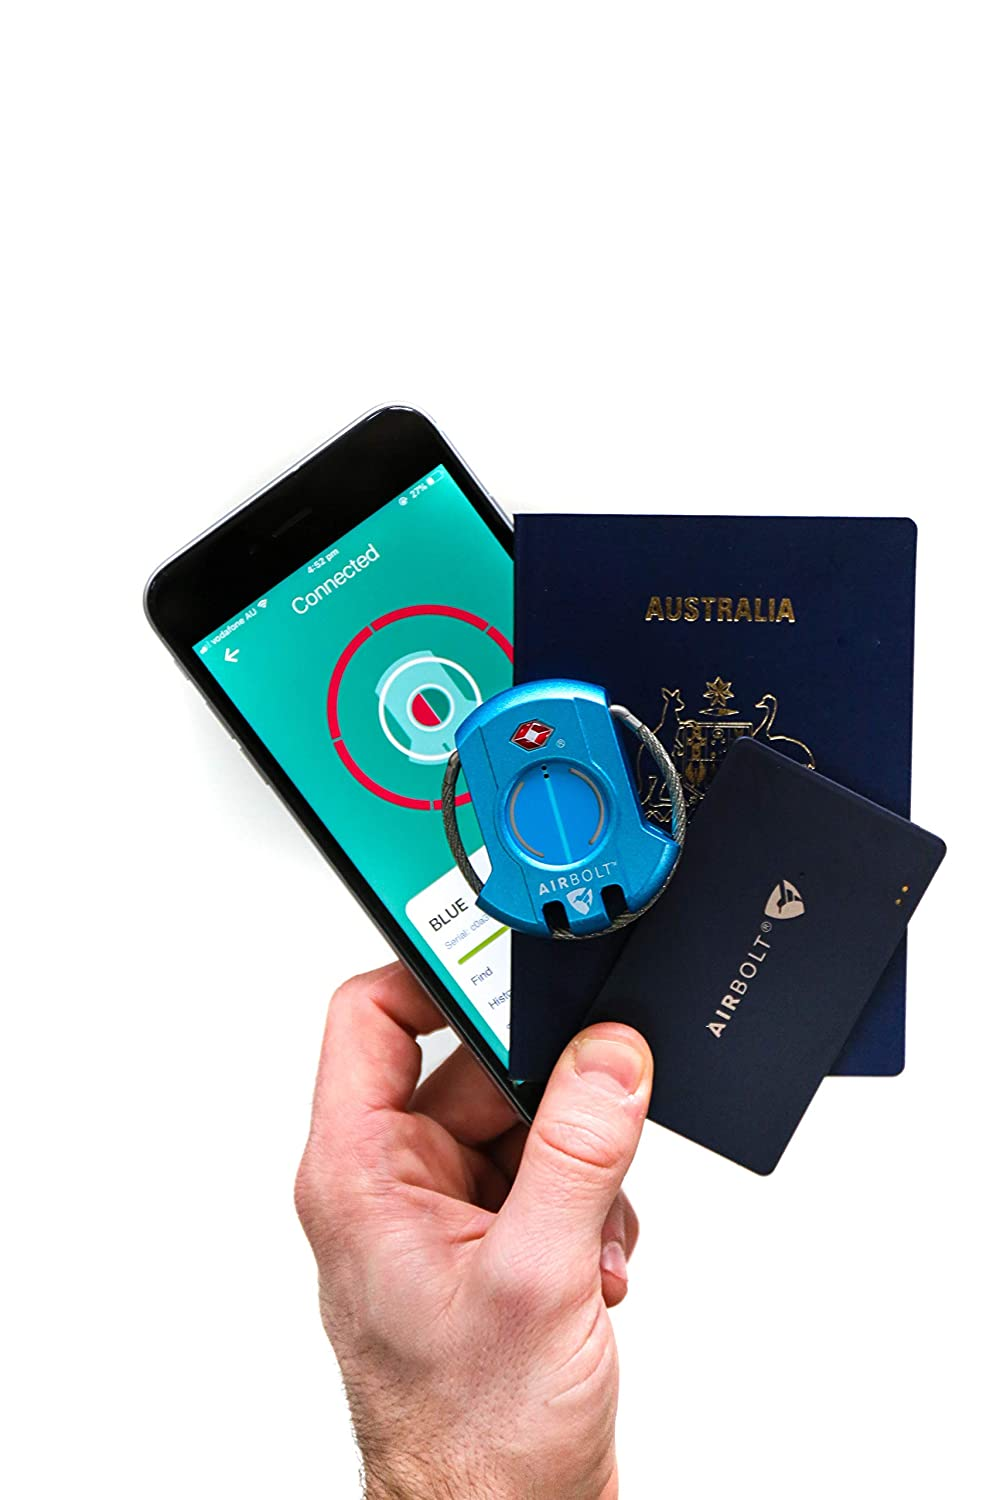 The Credit Card Like Tracker is Your Perfect Companion to Help Locate Anything You Attach or Slip it into. AirBolt Shield Card with World Class Range